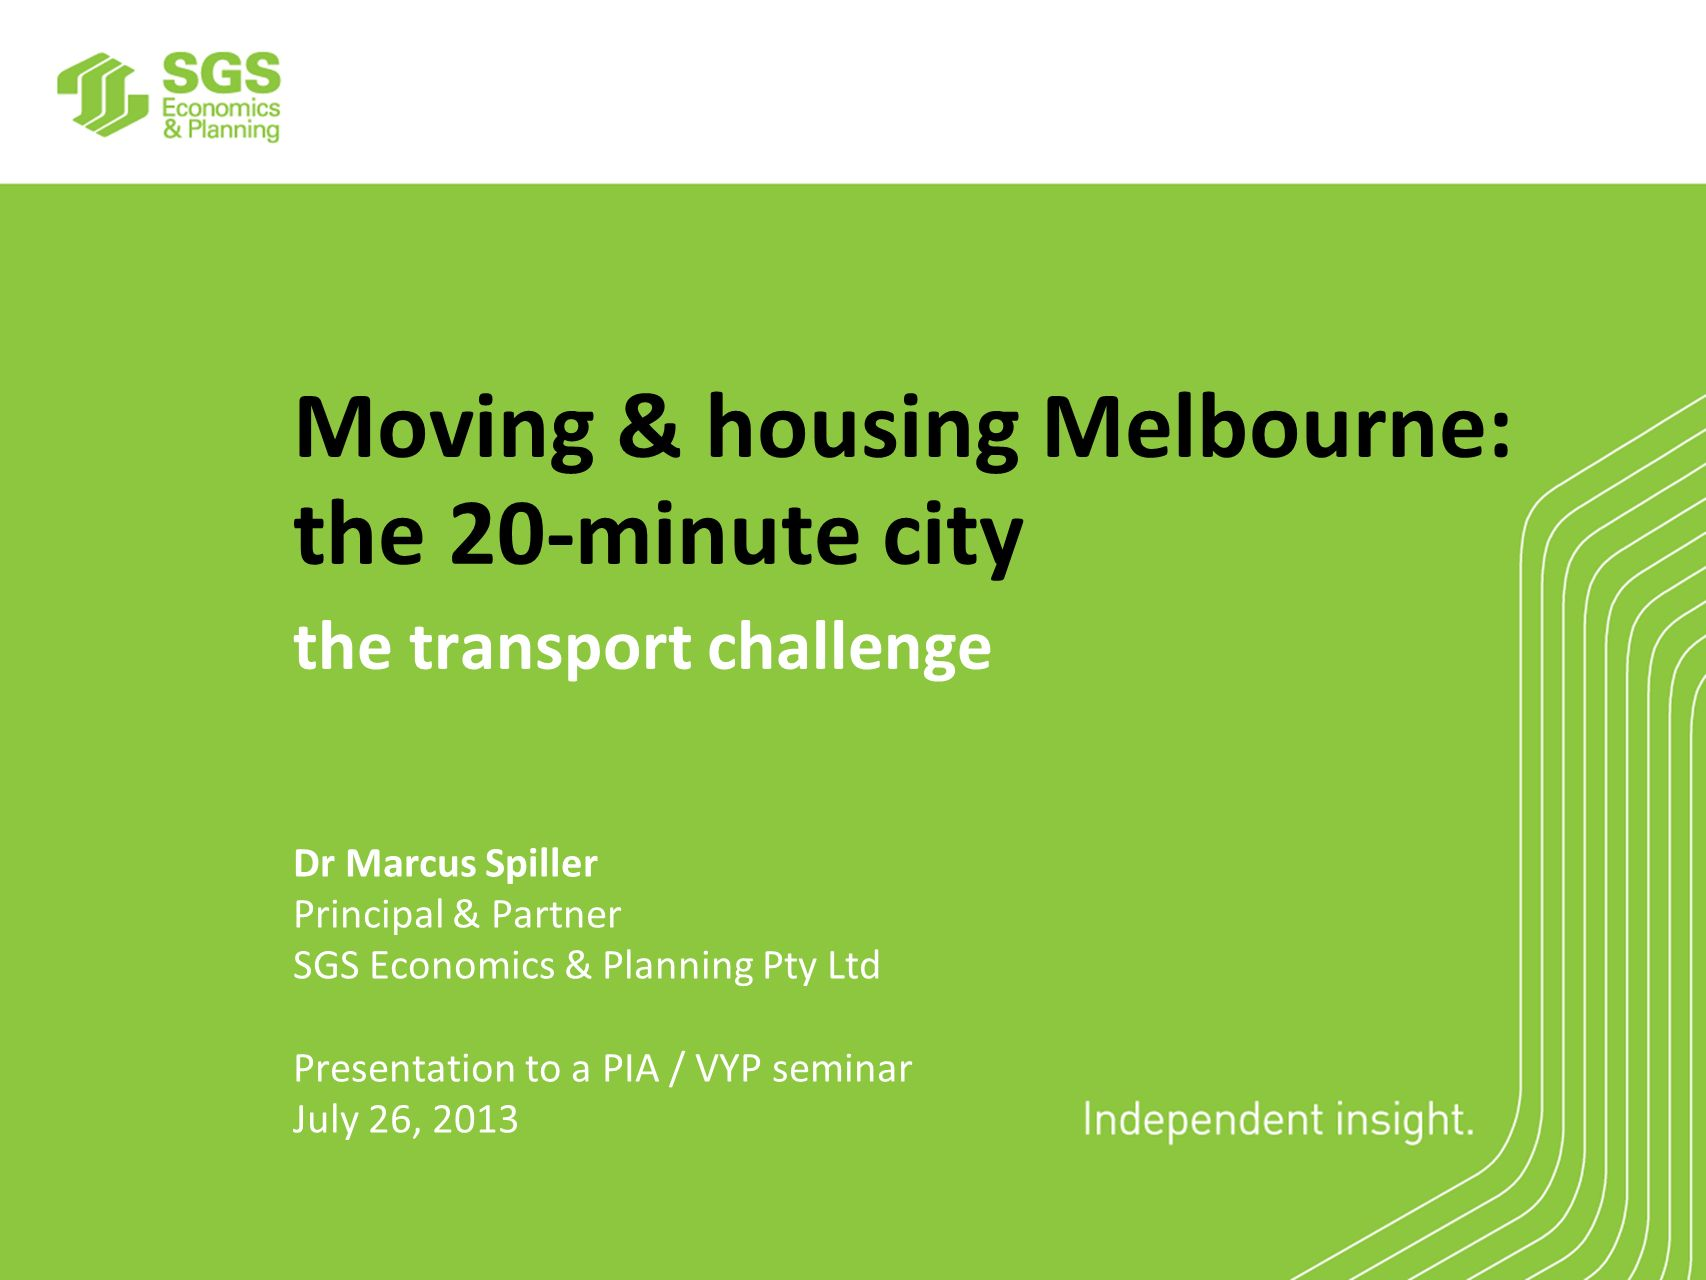 Moving & housing Melbourne: the 20-minute city the transport